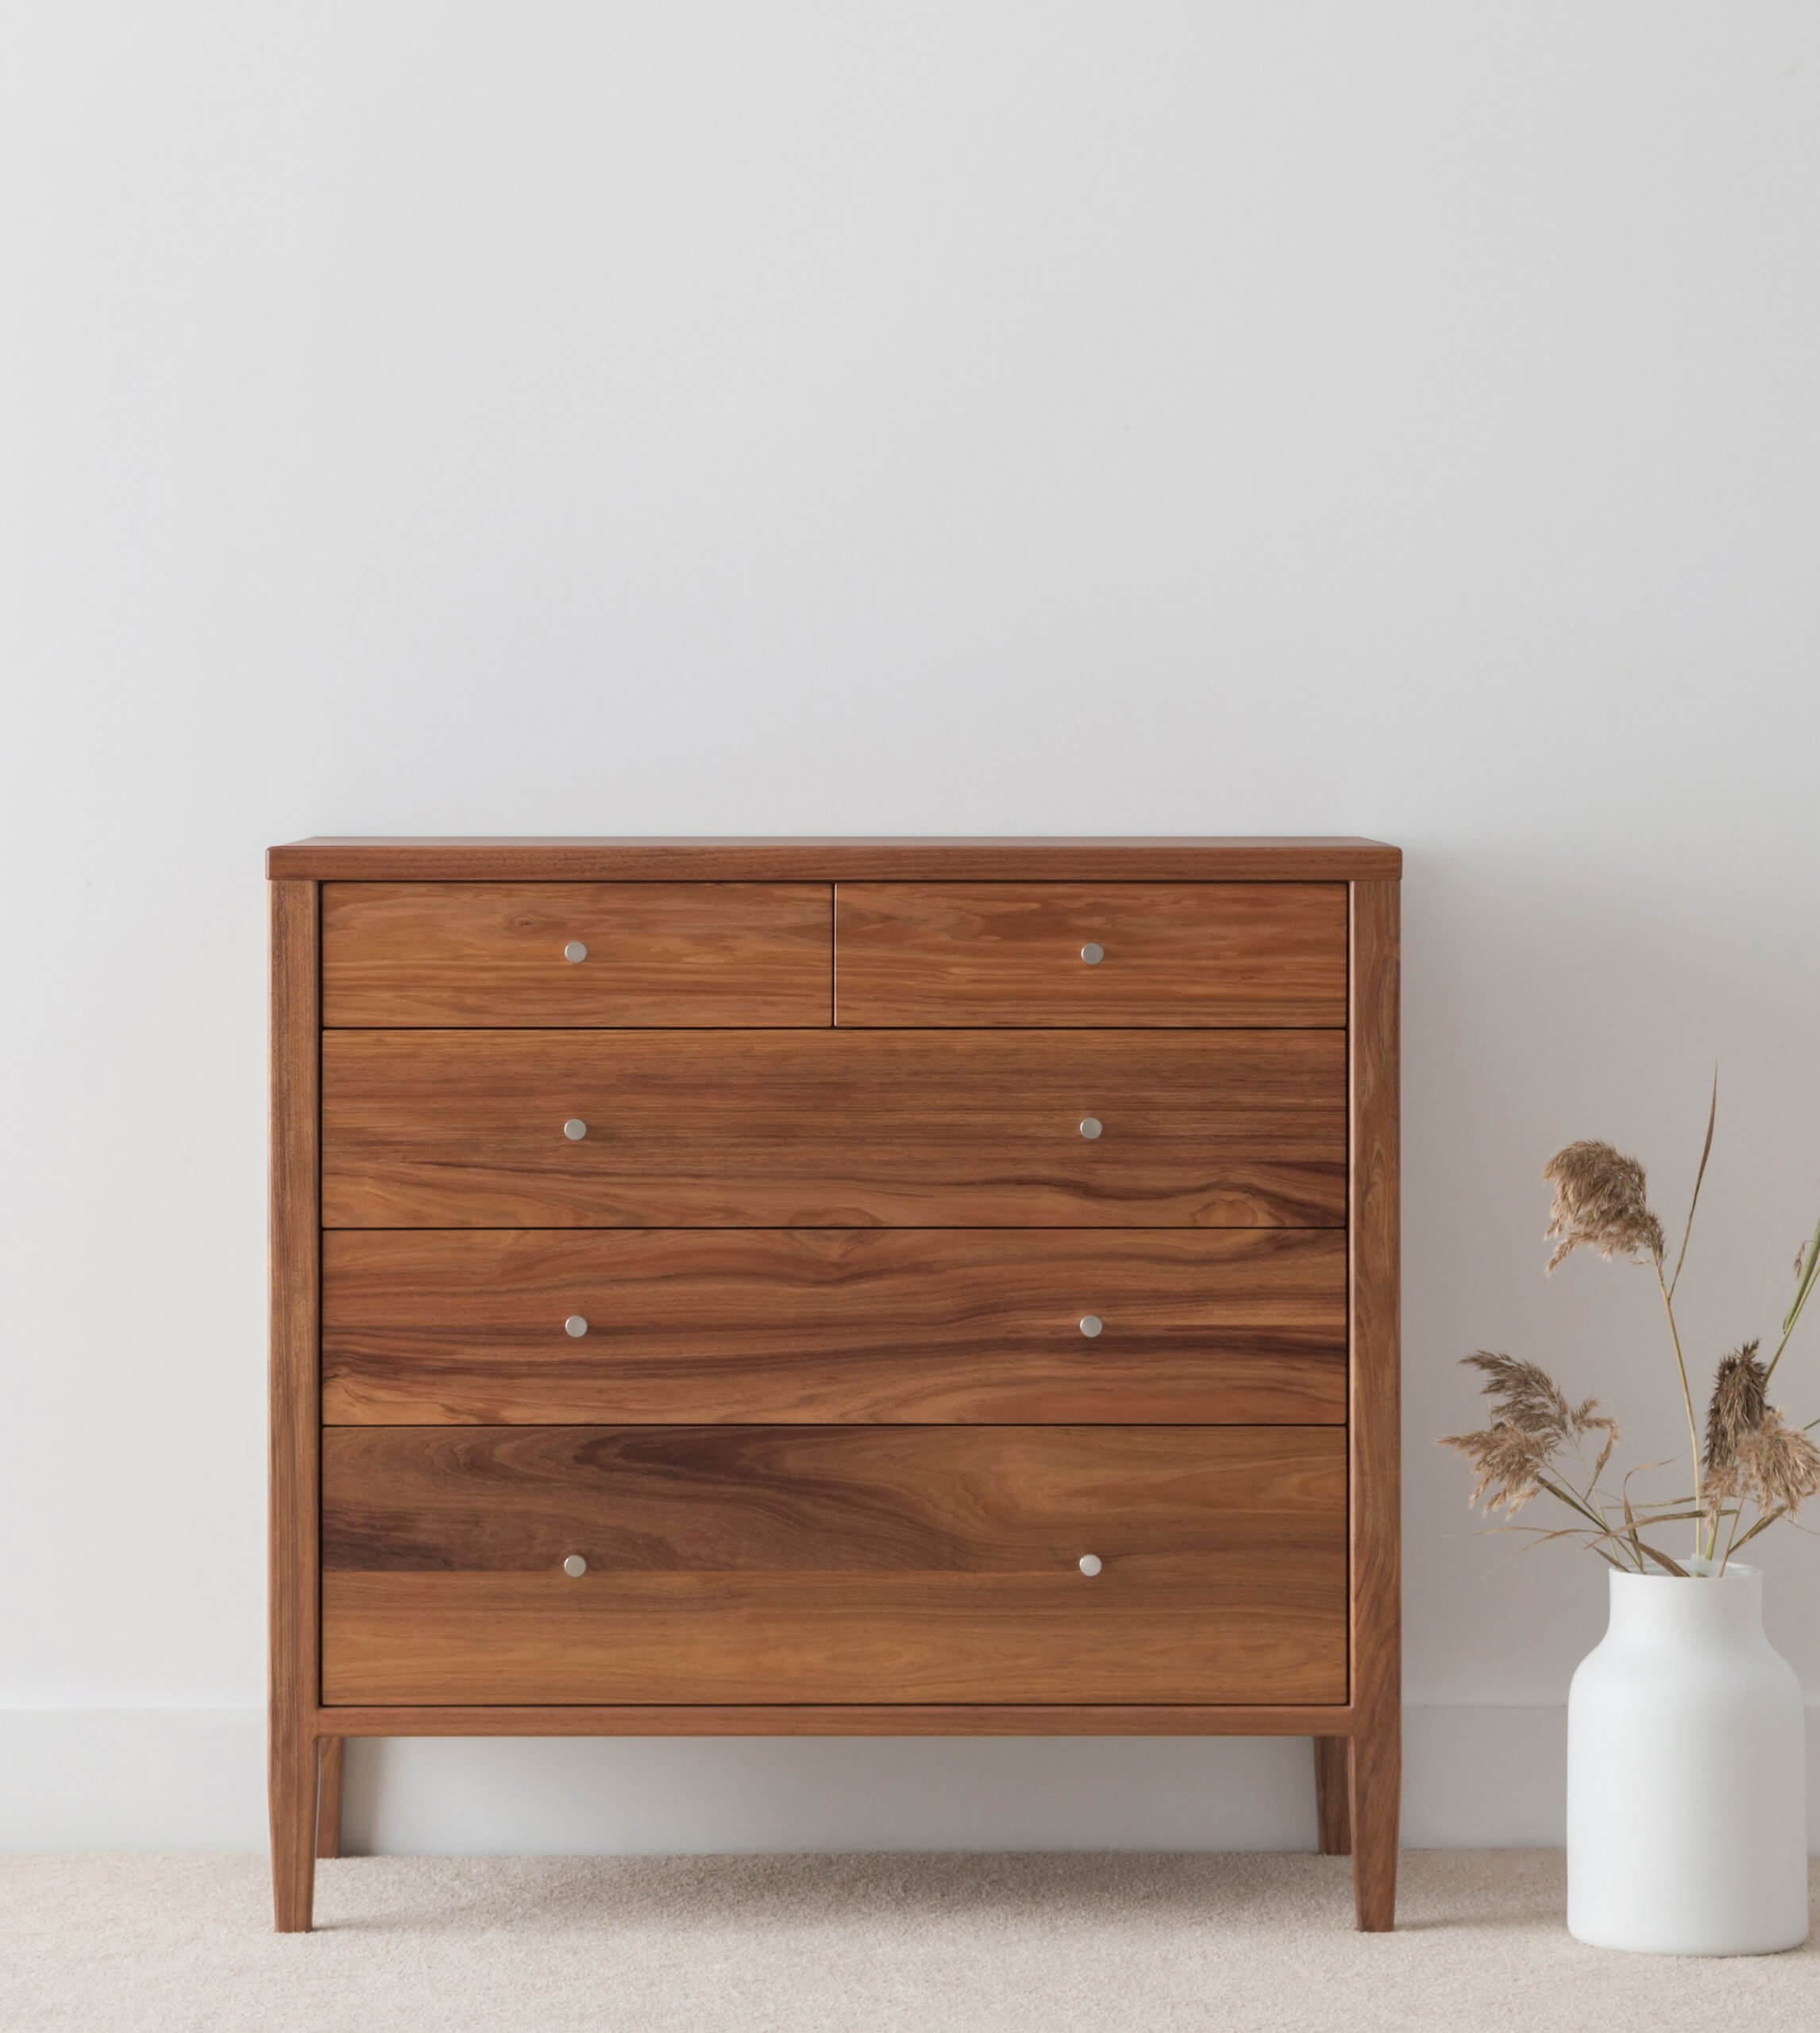 custom tallboy with 5 drawers made in Blackwood timber